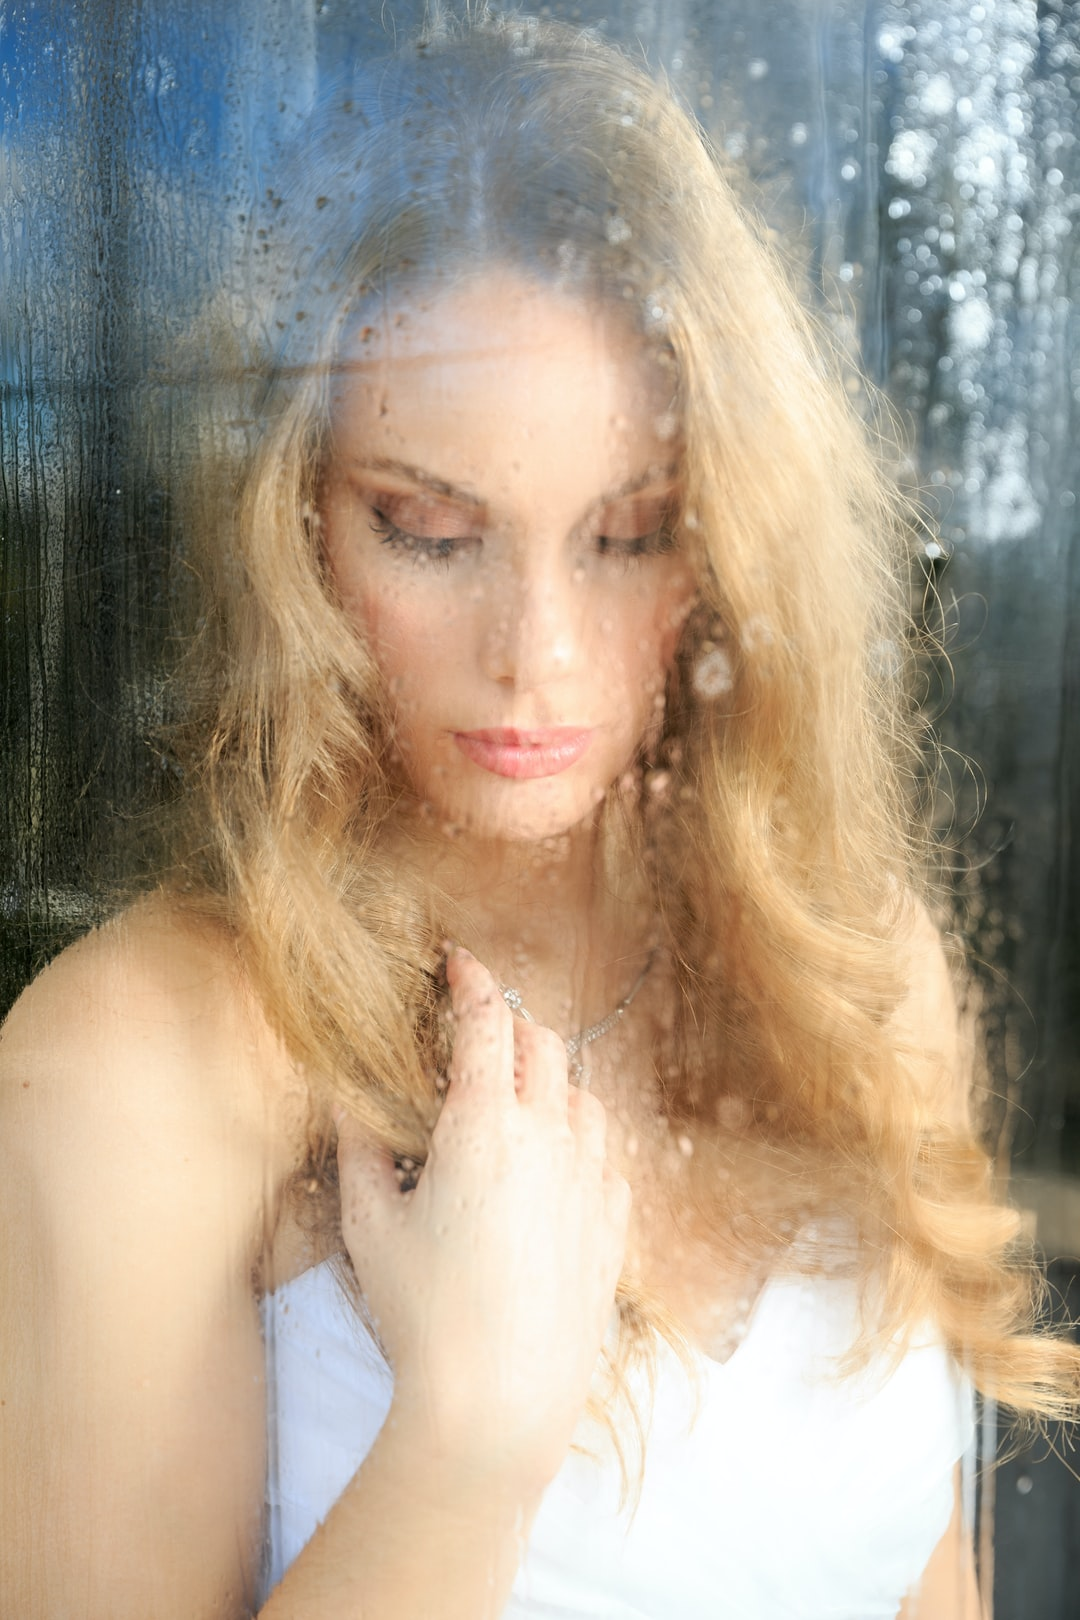 Thoughtful young woman behind a wet window glass